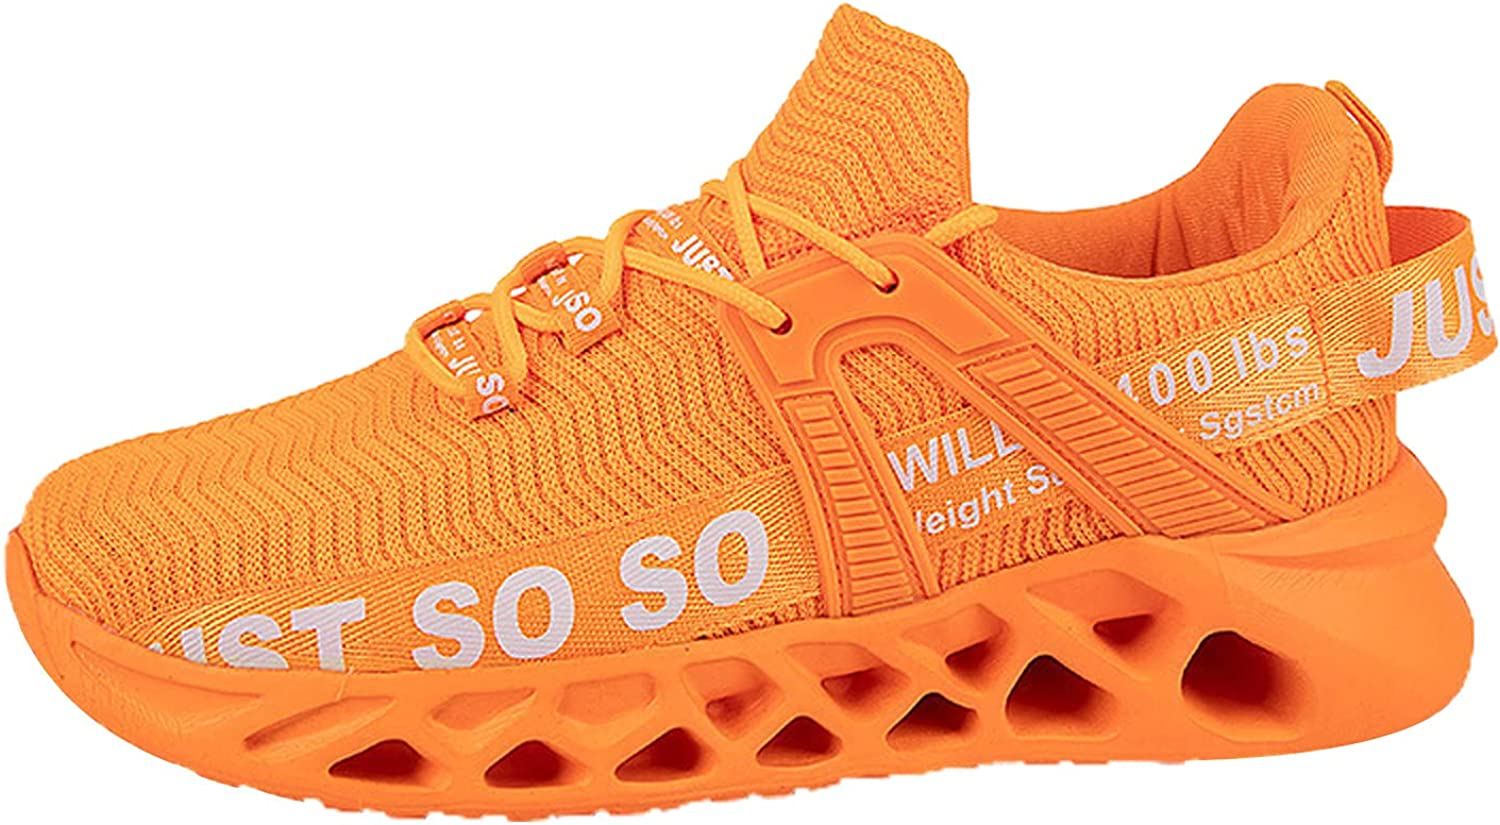 HTHJSCO Mens online shopping low-pricing Athletic Walking Running Shoes Outdo Tennis Fashion